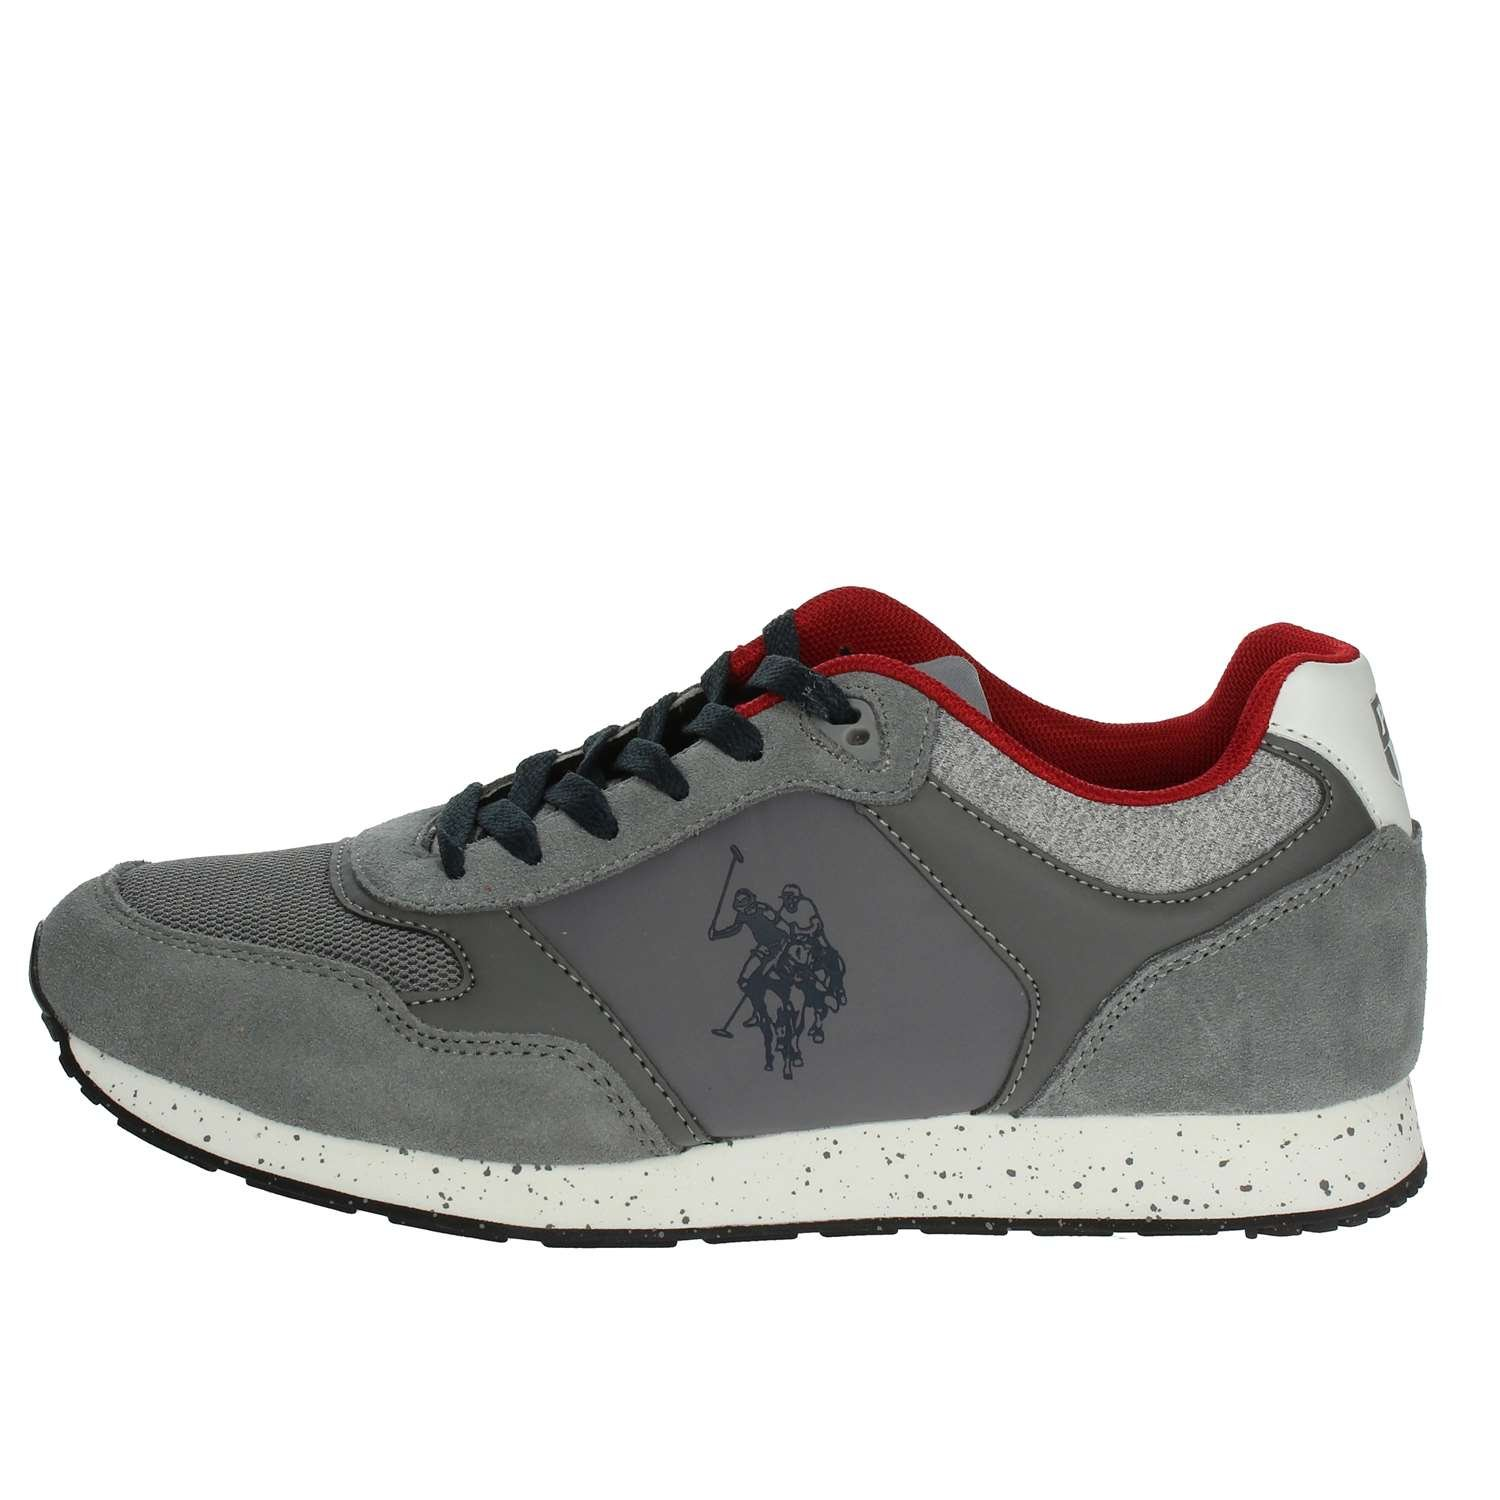 U.S. Polo Assn. FLASH4060S8 LT1 Turnschuhe Herren